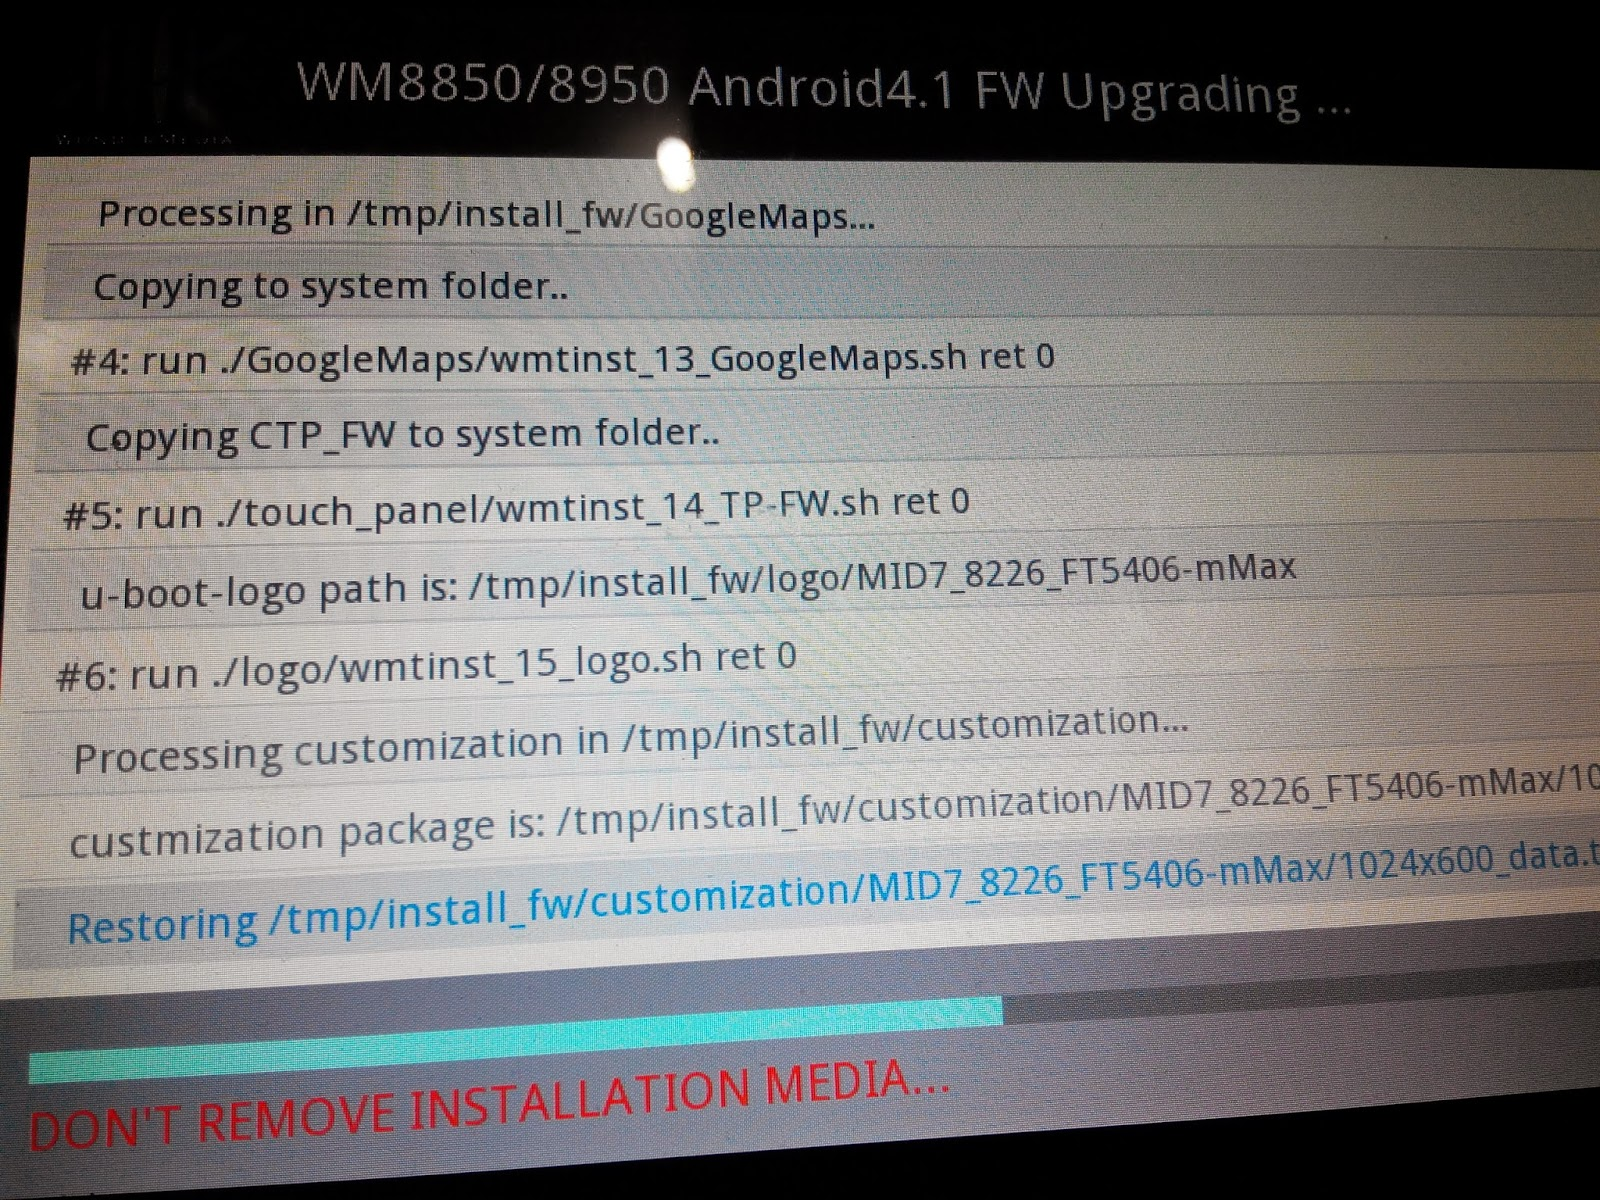 Jual Murah Smartfren Andromax C Android Ics 40 Terbaru 2018 Dell Inspiron 15 7567 I5 7300hq 4gb Gtx 1050 Ti 156ampquot Fhd Red Adeeology How To Re Install New Tab Nsfat 4 Once